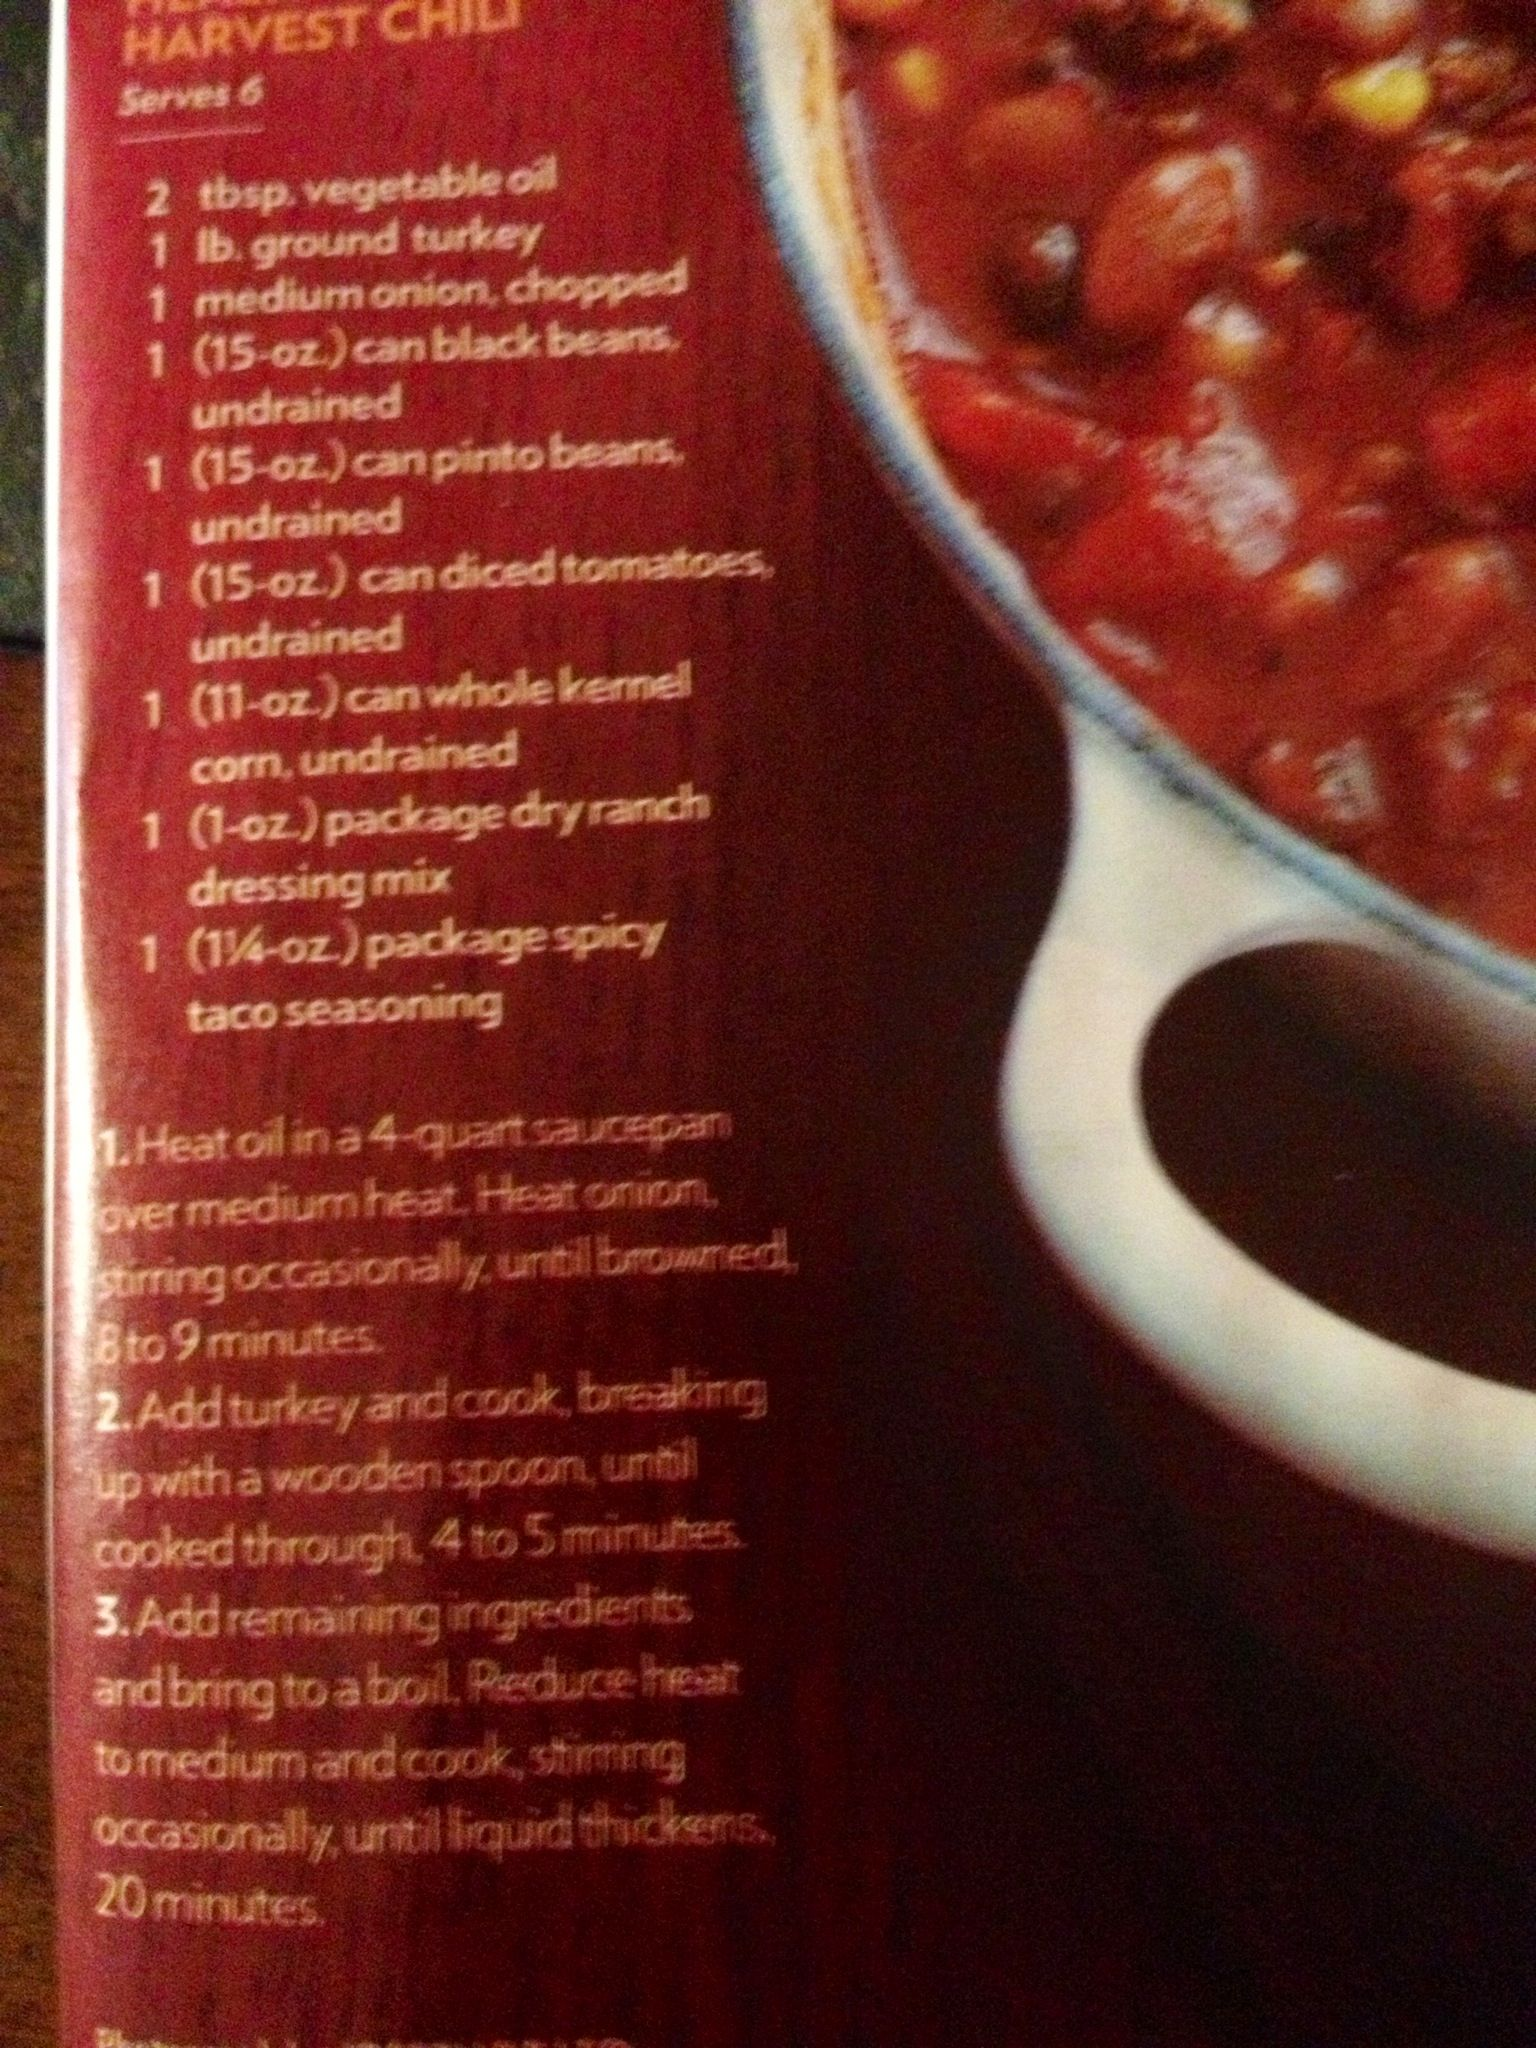 Saw This Turkey Chili Recipe In People Magazine Might Try It Next Time Ground Turkey Chili Chili Recipe Turkey Turkey Chili